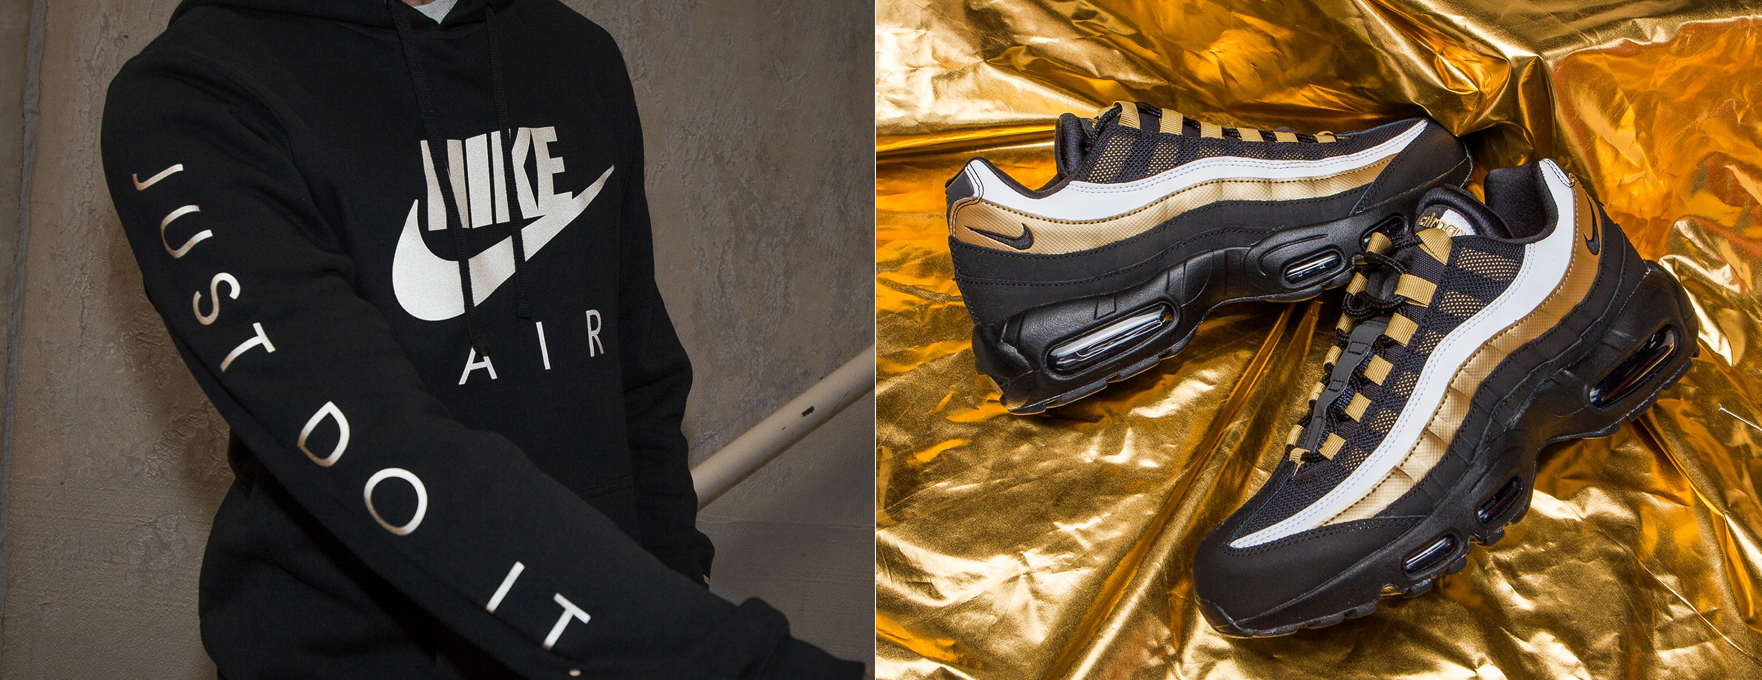 "the latest 165ee 1db77 Nike Air Max 95 ""Black Metallic Gold"" x Nike Shirts, Hoodies, Jacket and  Hats to Match"